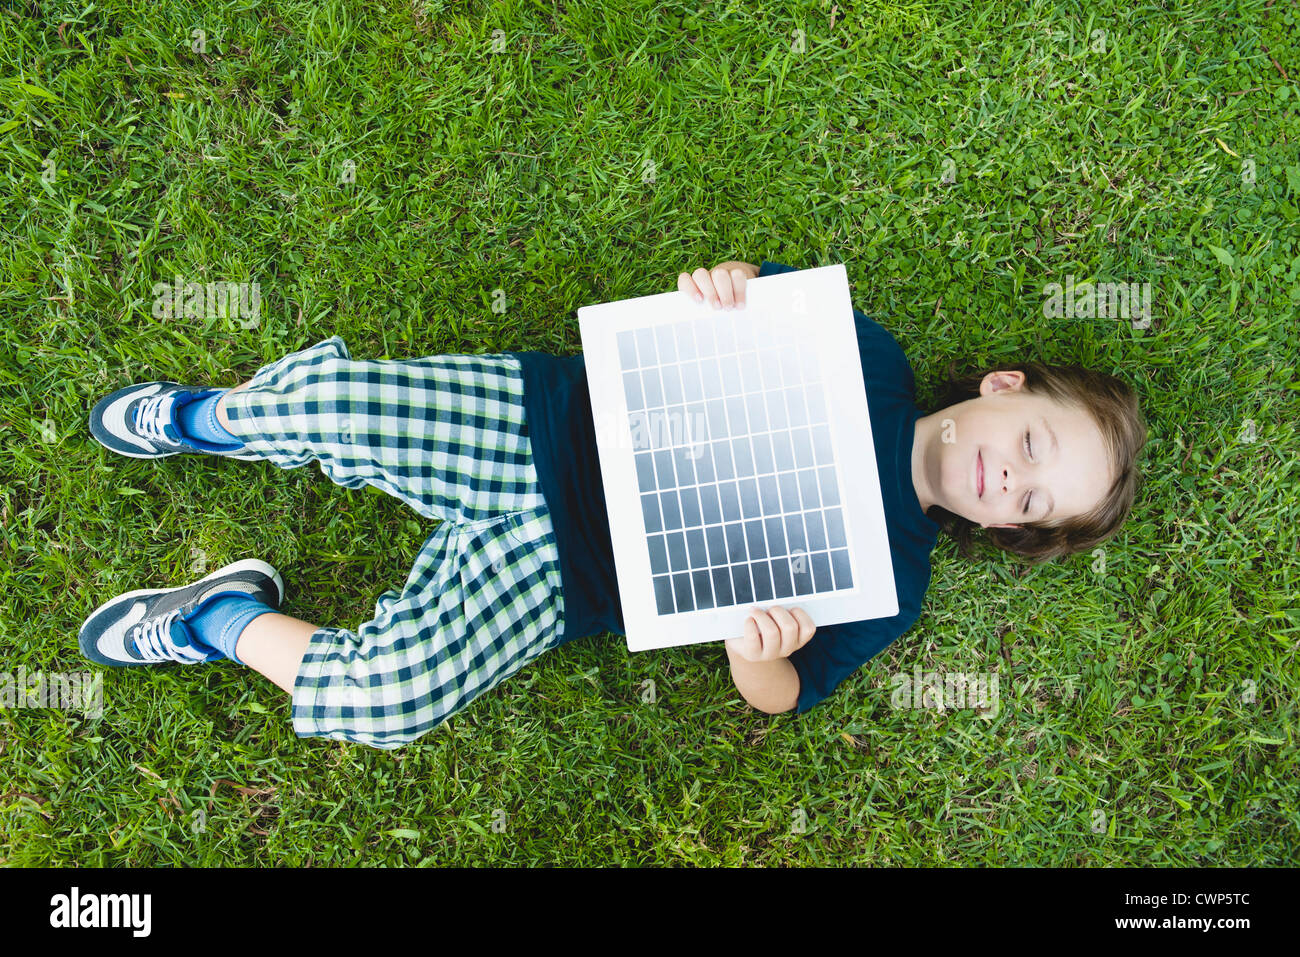 Boy lying on grass holding solar panel Photo Stock